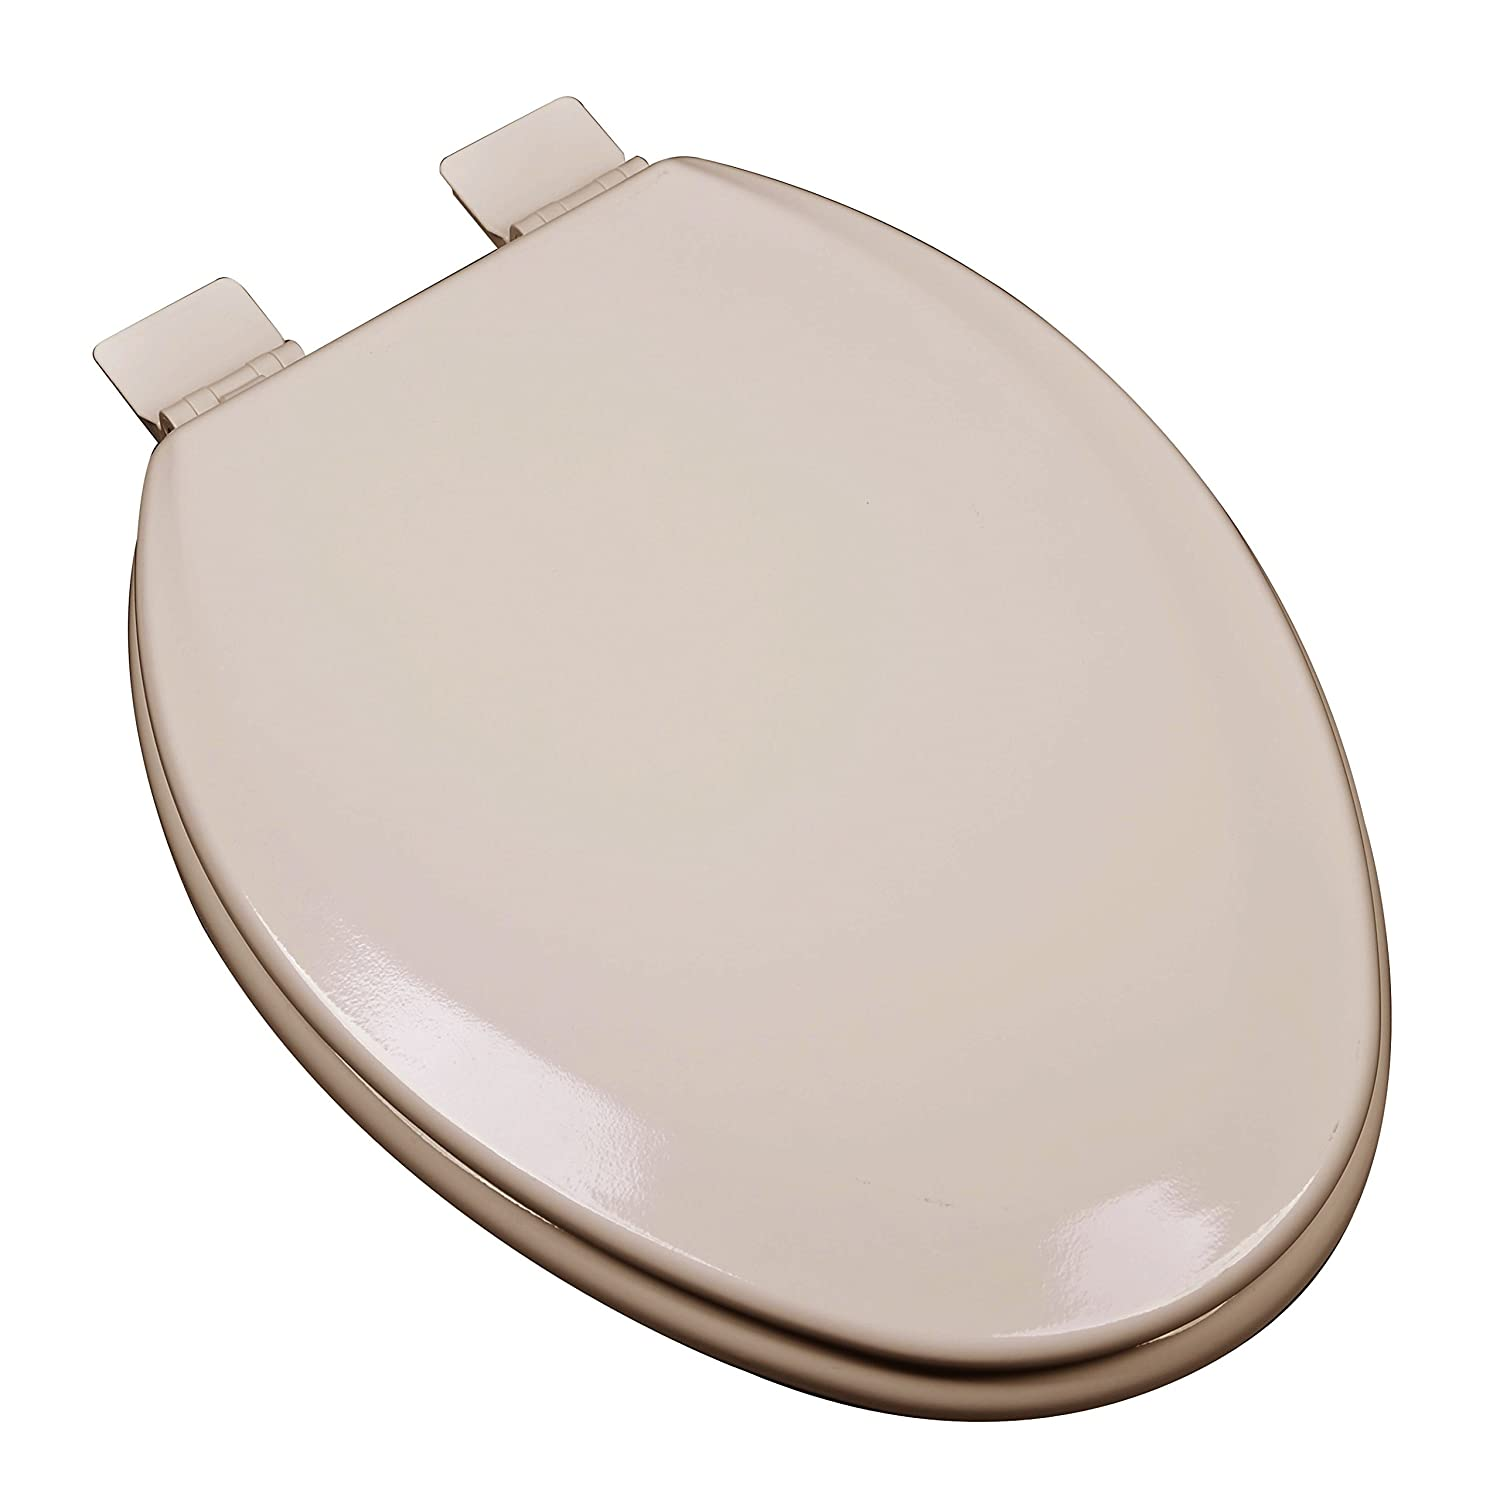 Bath Décor 1F1E5-30 Premium Molded Wood Elongated Toilet Seat with Adjustable Hinge & OSG, Fawn Beige 60%OFF